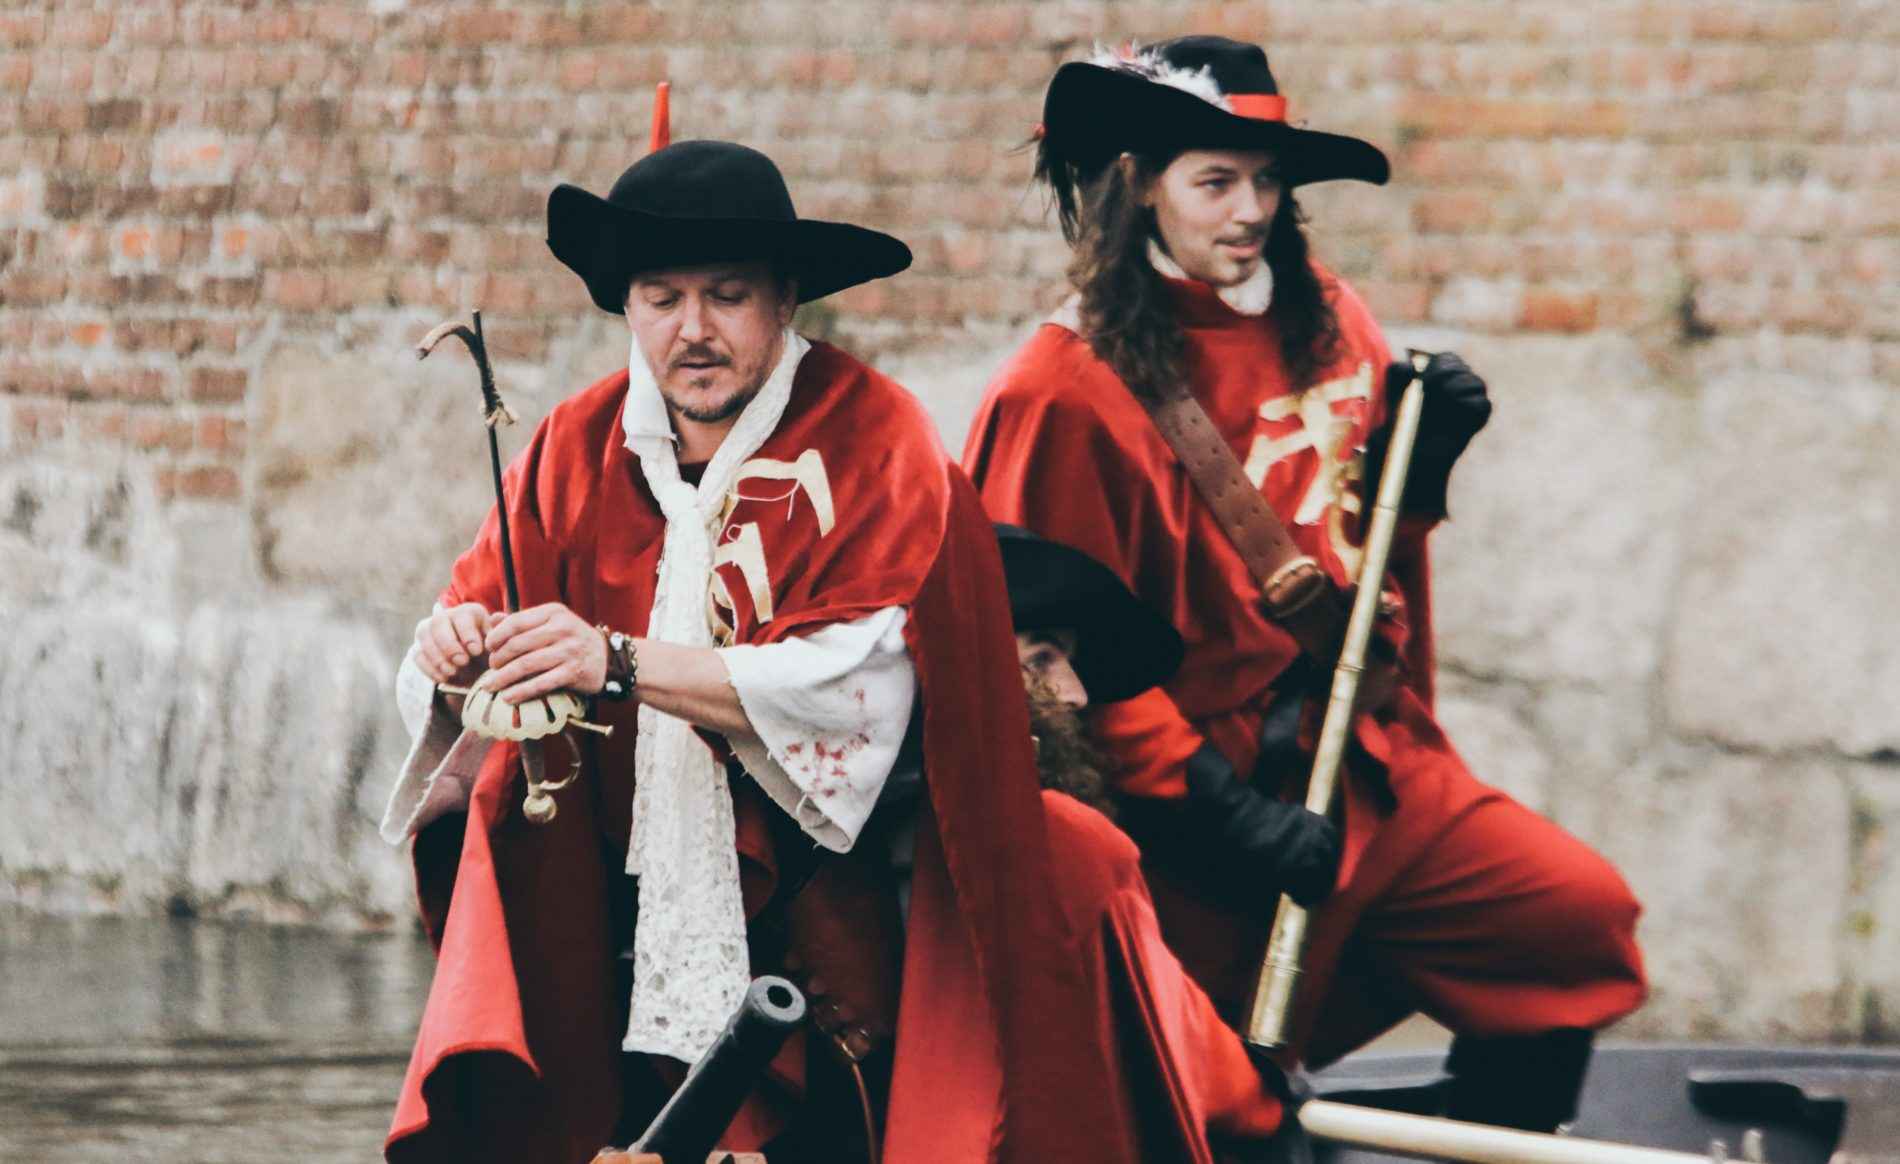 Two men in red and black costumes like 3 Muskateers, sitting and learning in front of brick wall.